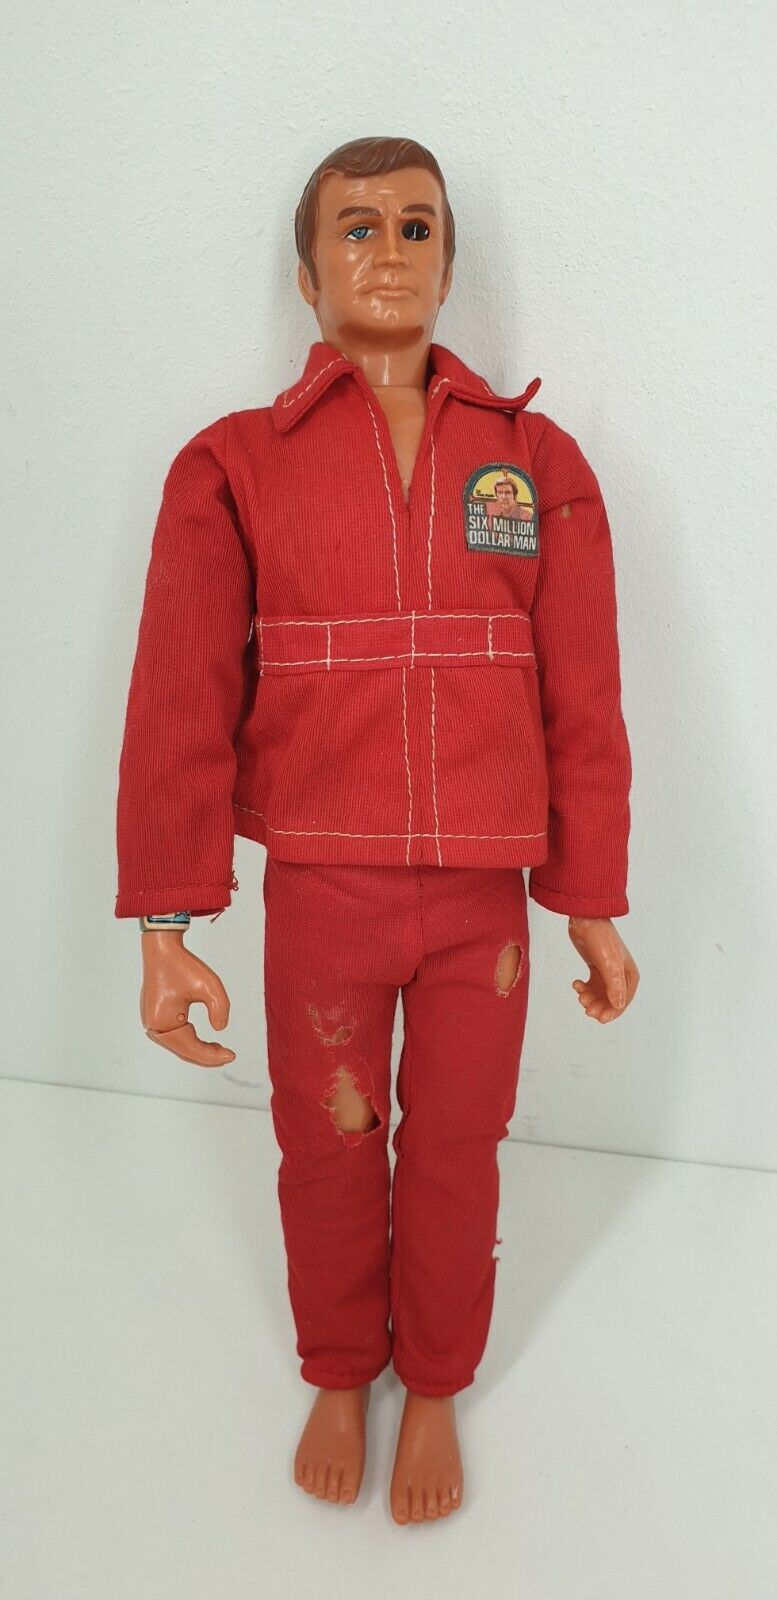 Jahr 1975 Kenner Six Million Dollar Man Wirkung figure Silber arm bionic man